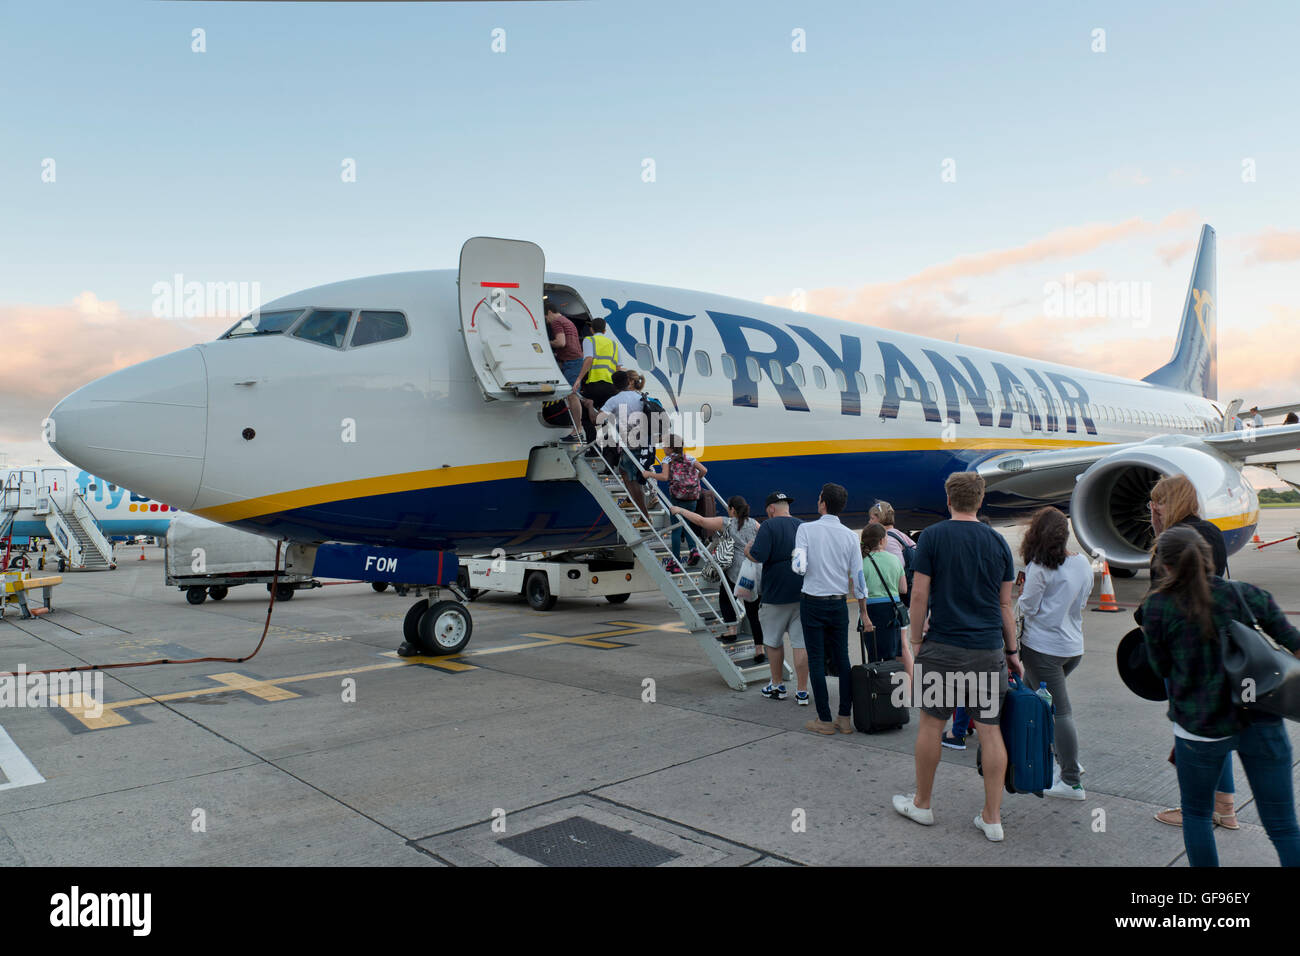 Passengers board a Ryanair Boeing 737-800 aircraft on the apron of Manchester Airport (Editorial use only). - Stock Image